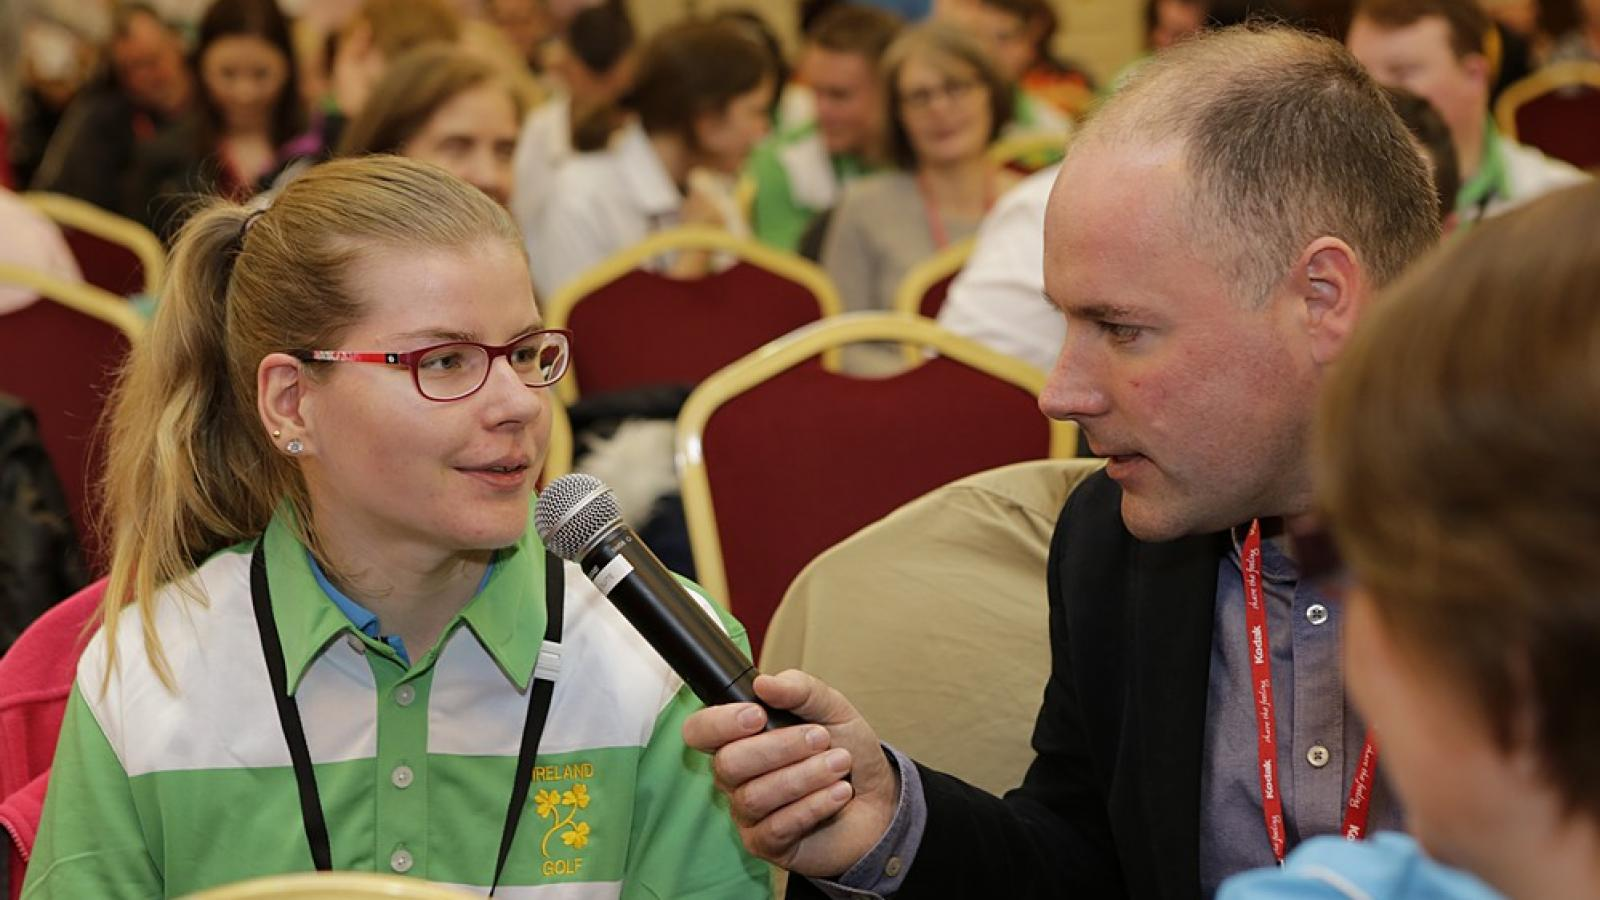 Reporter Henry McKeane interviews athlete Edel Armstrong at our Athlete Leadership Forum